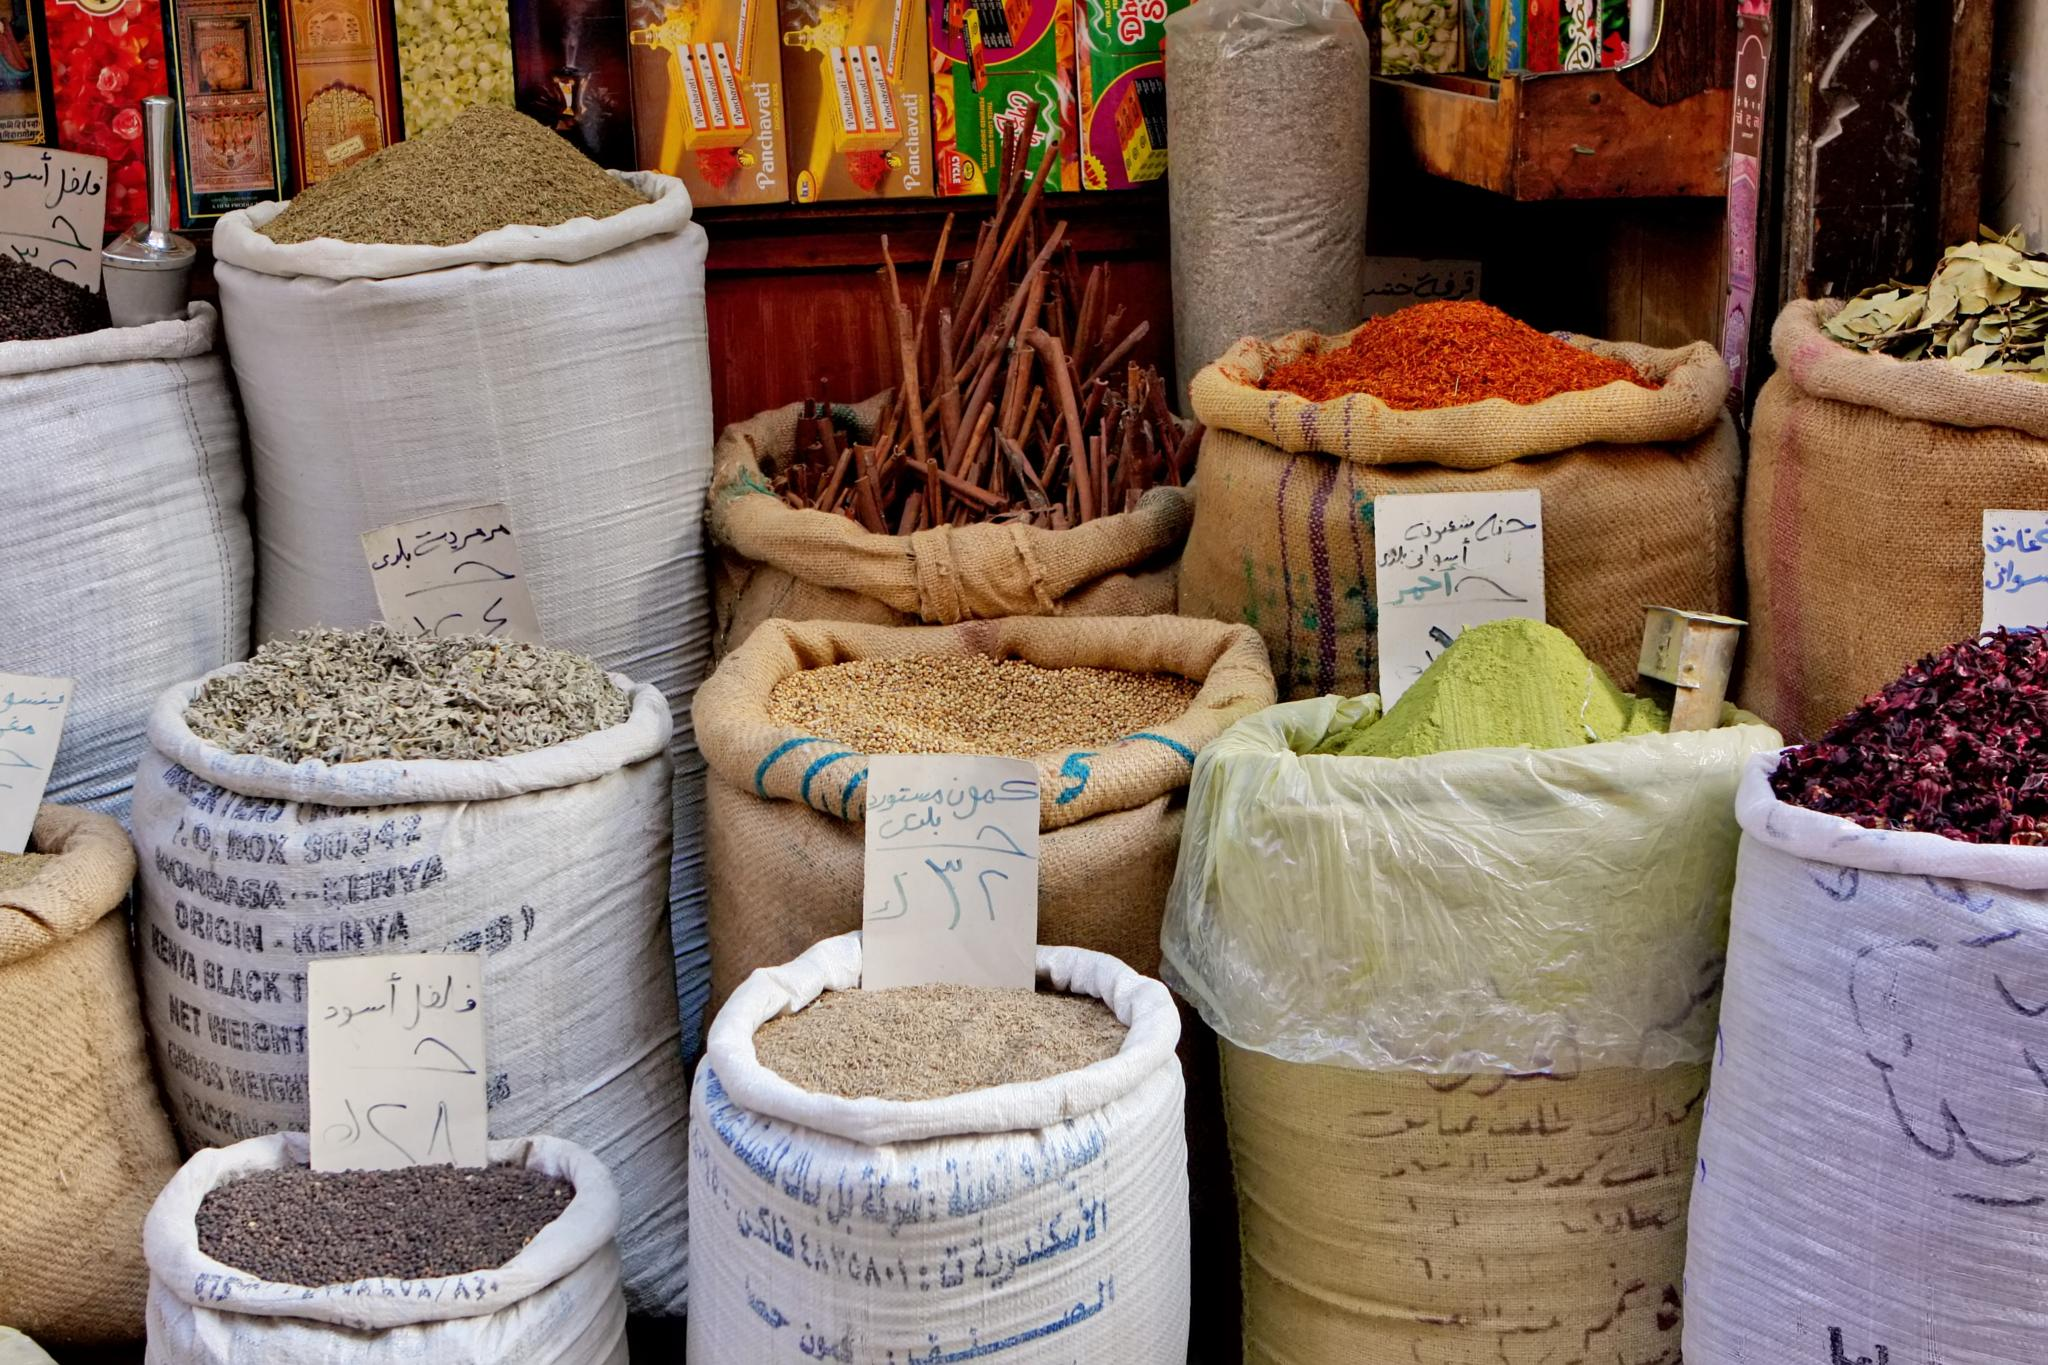 Spice Shop in Cairo by Sonja Ferreira